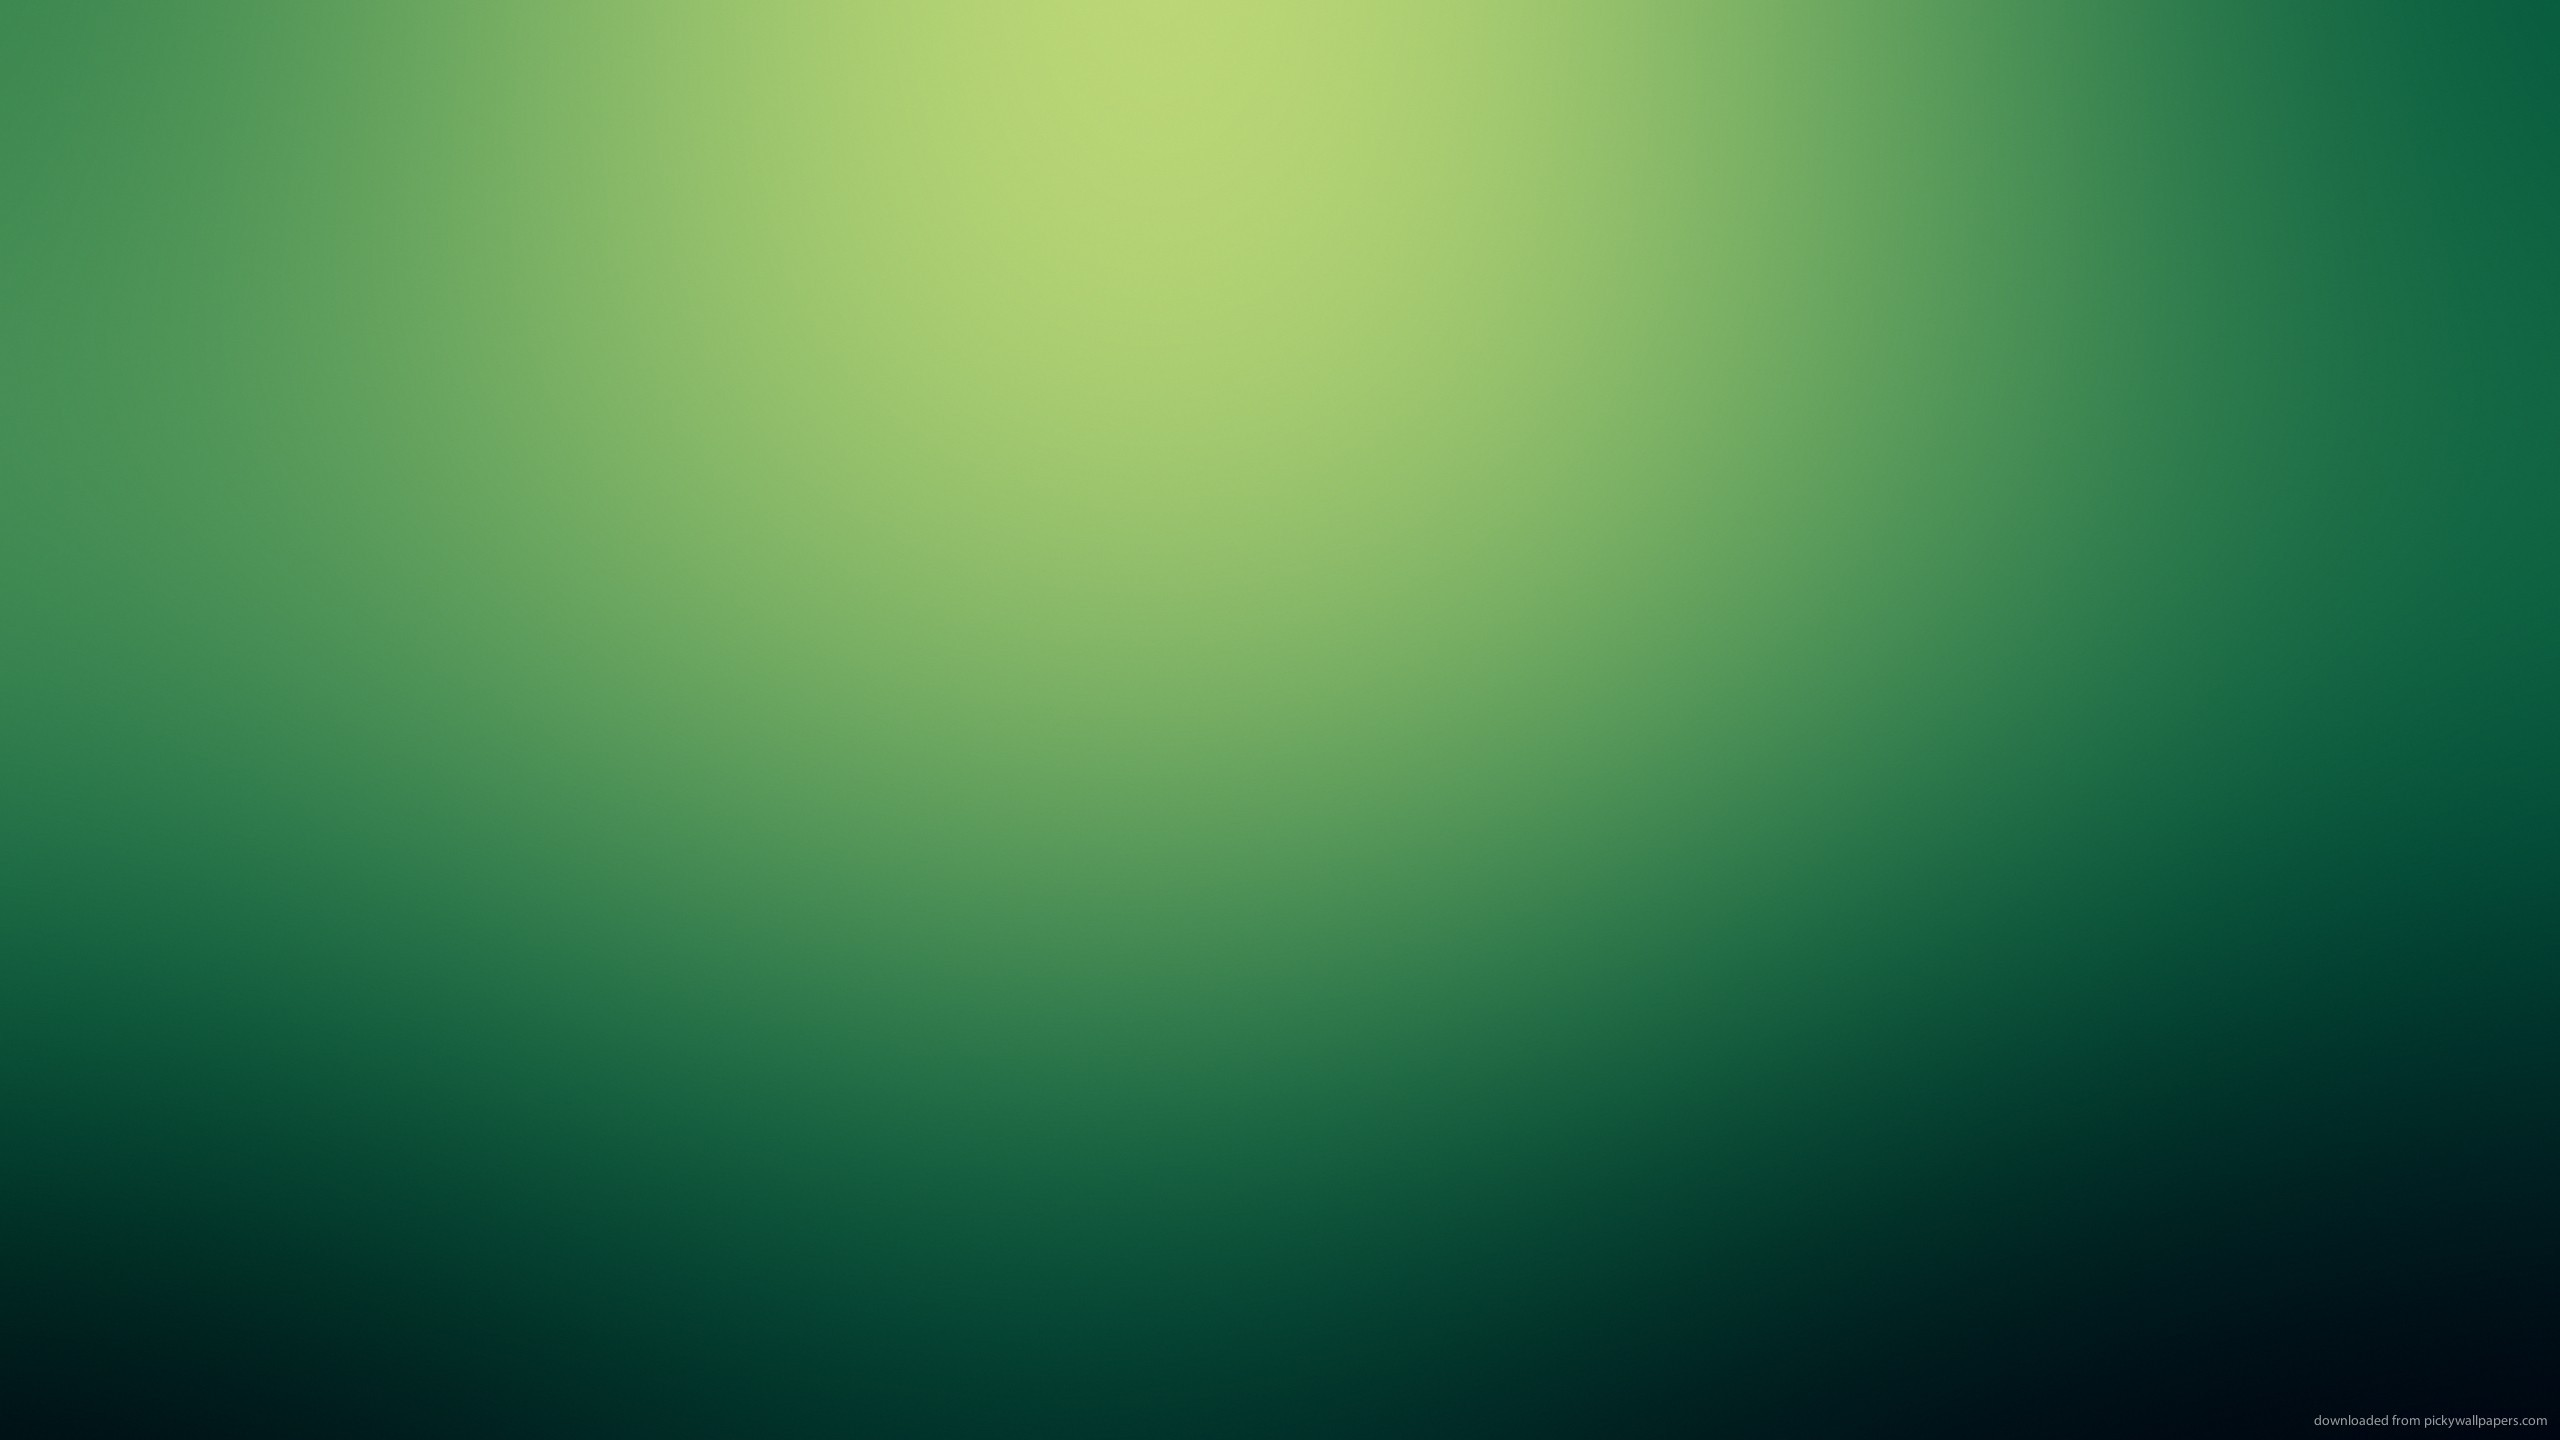 wallpapers simple green wallpaper - photo #13